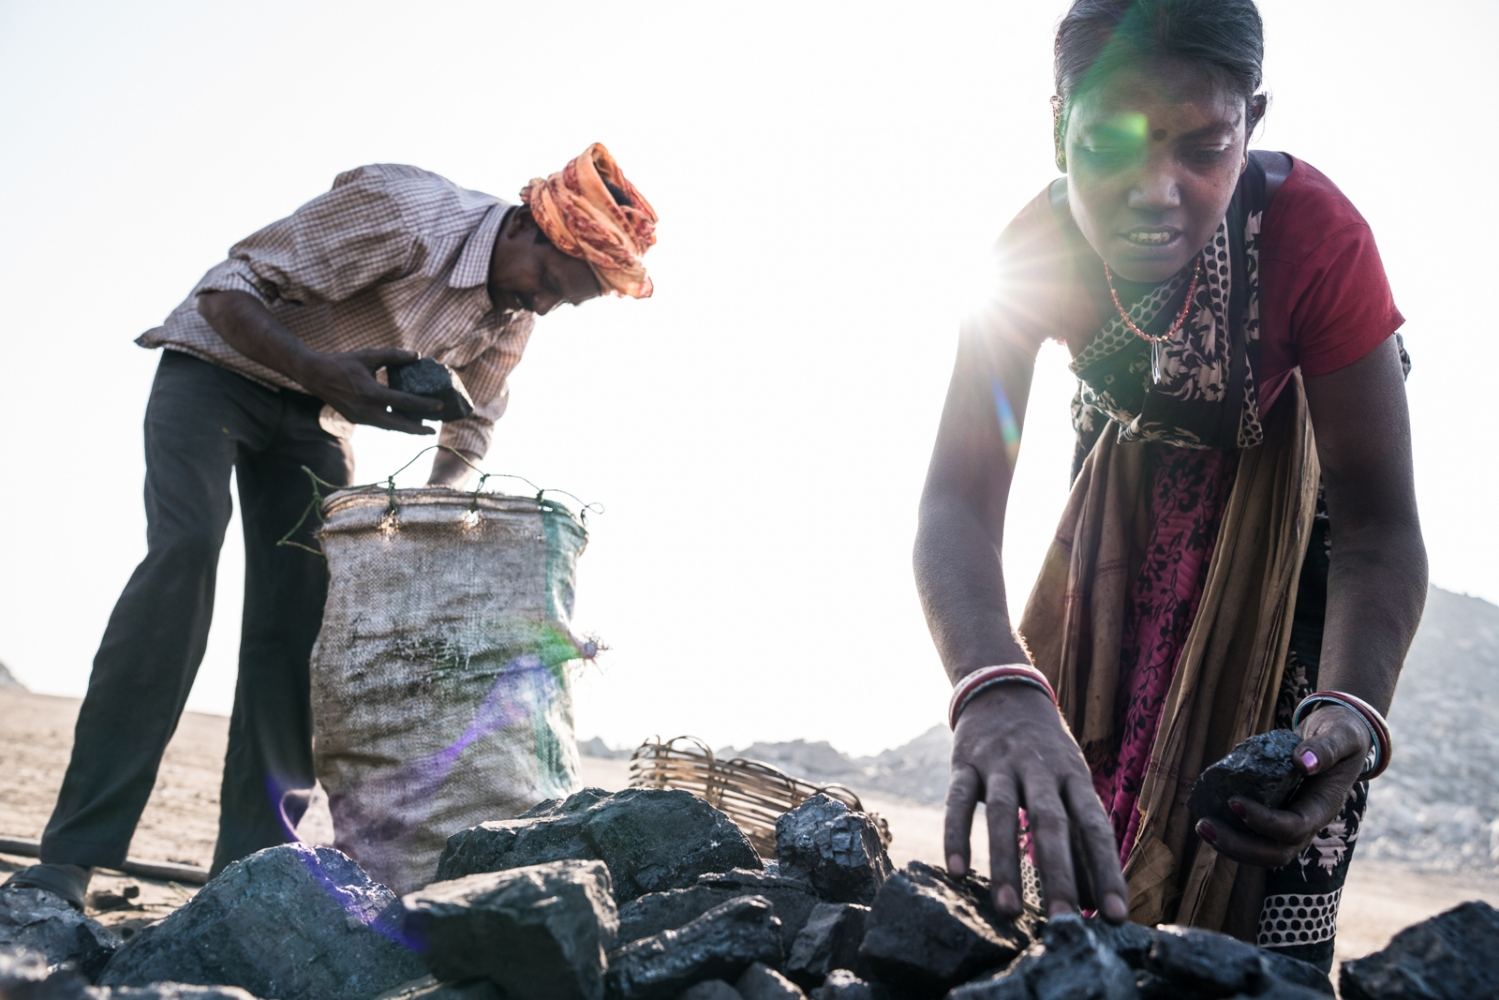 Workers pack up sacks full of illegally scavenged coal in the coal mines of Jharia, India. Scavenged coal is either sold on the black market for domestic use or used personally by the scavengers in their homes. Mine's such as those in Jharia supply coal to India's largest power plants that power mega cities such as New Delhi.